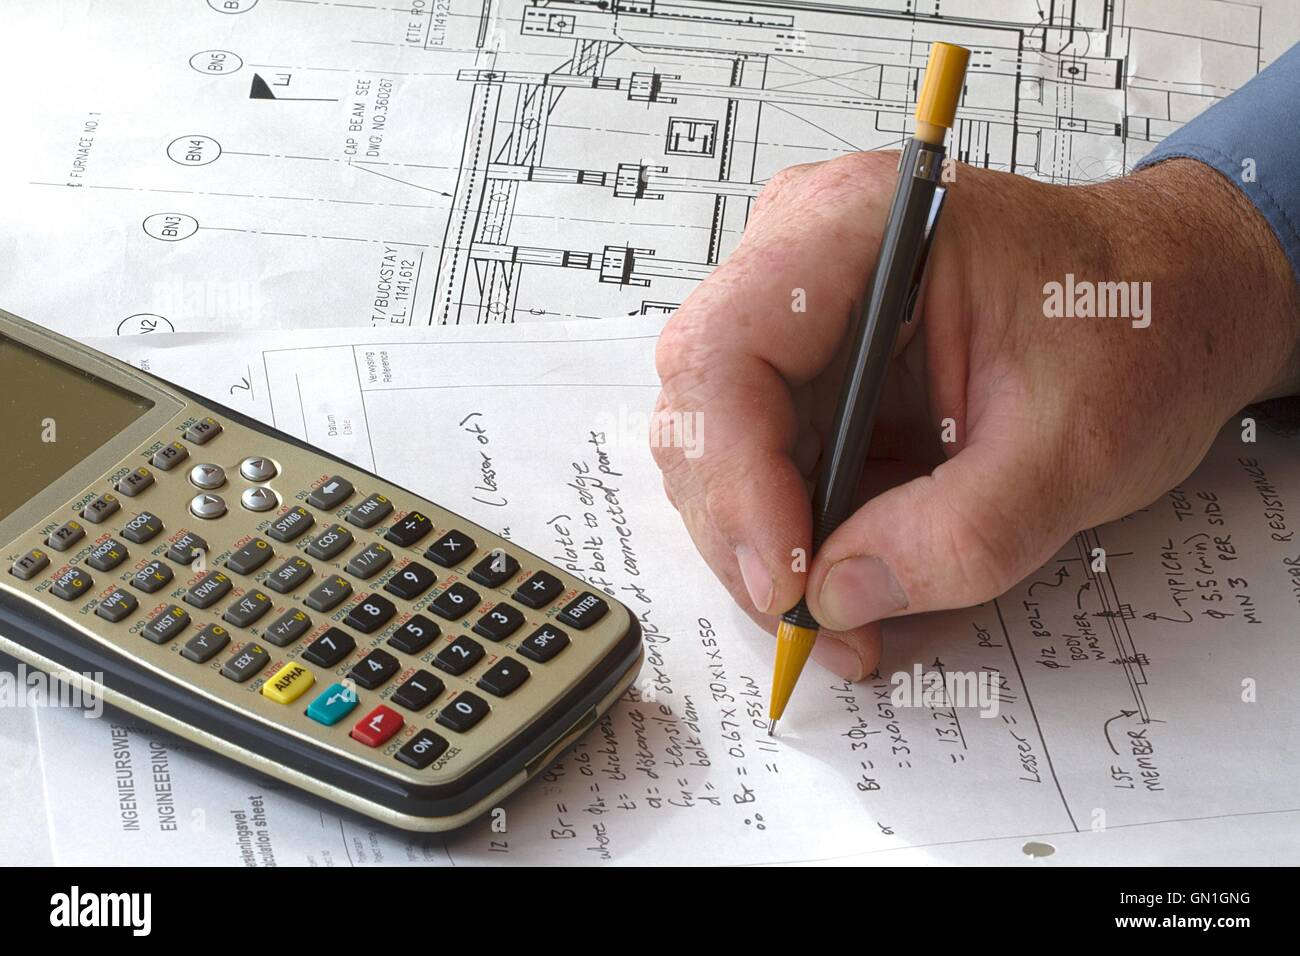 Engineer doing hand calculations on a calculation sheet, with a calculator on the side - Stock Image